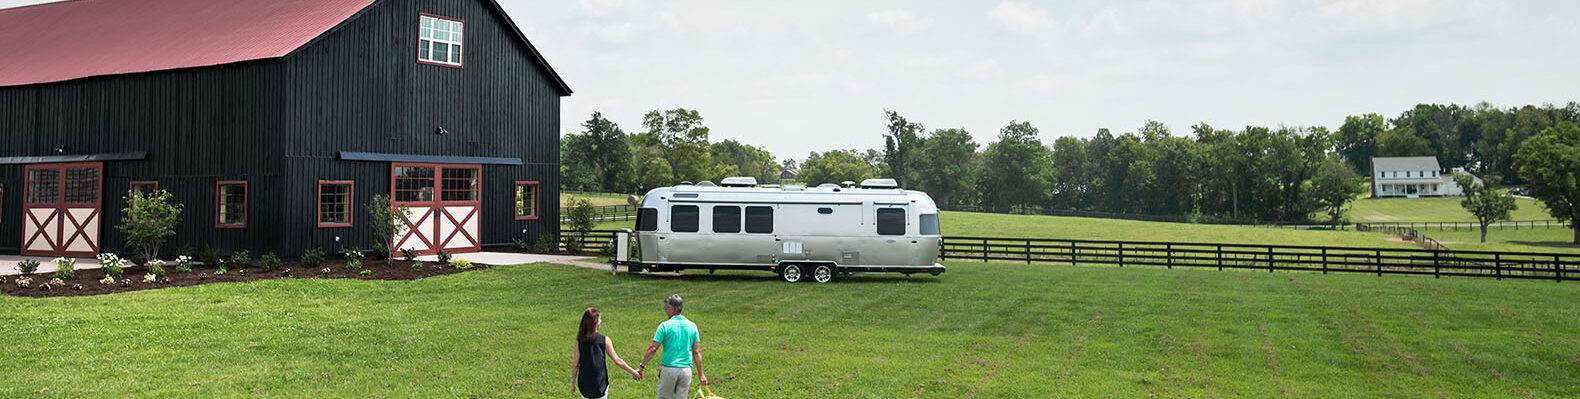 two people walking towards an airstream with a barn-like structure next to it. they are walking on a green field